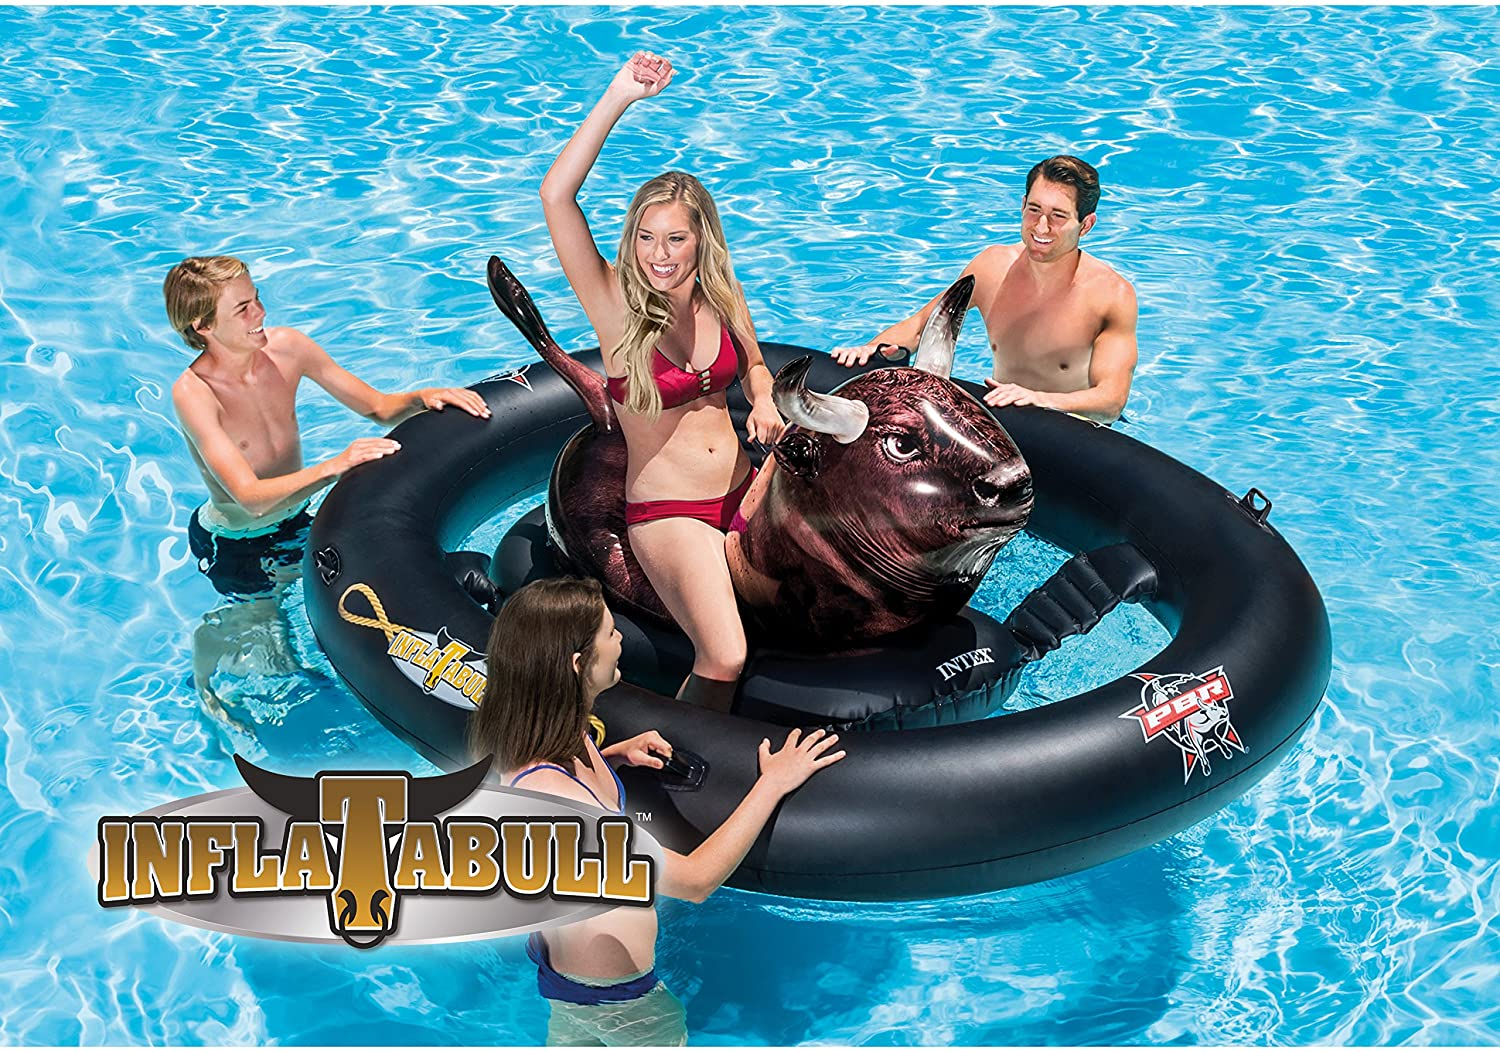 Intex Inflat-A-Bull Ride-On Pool Toy